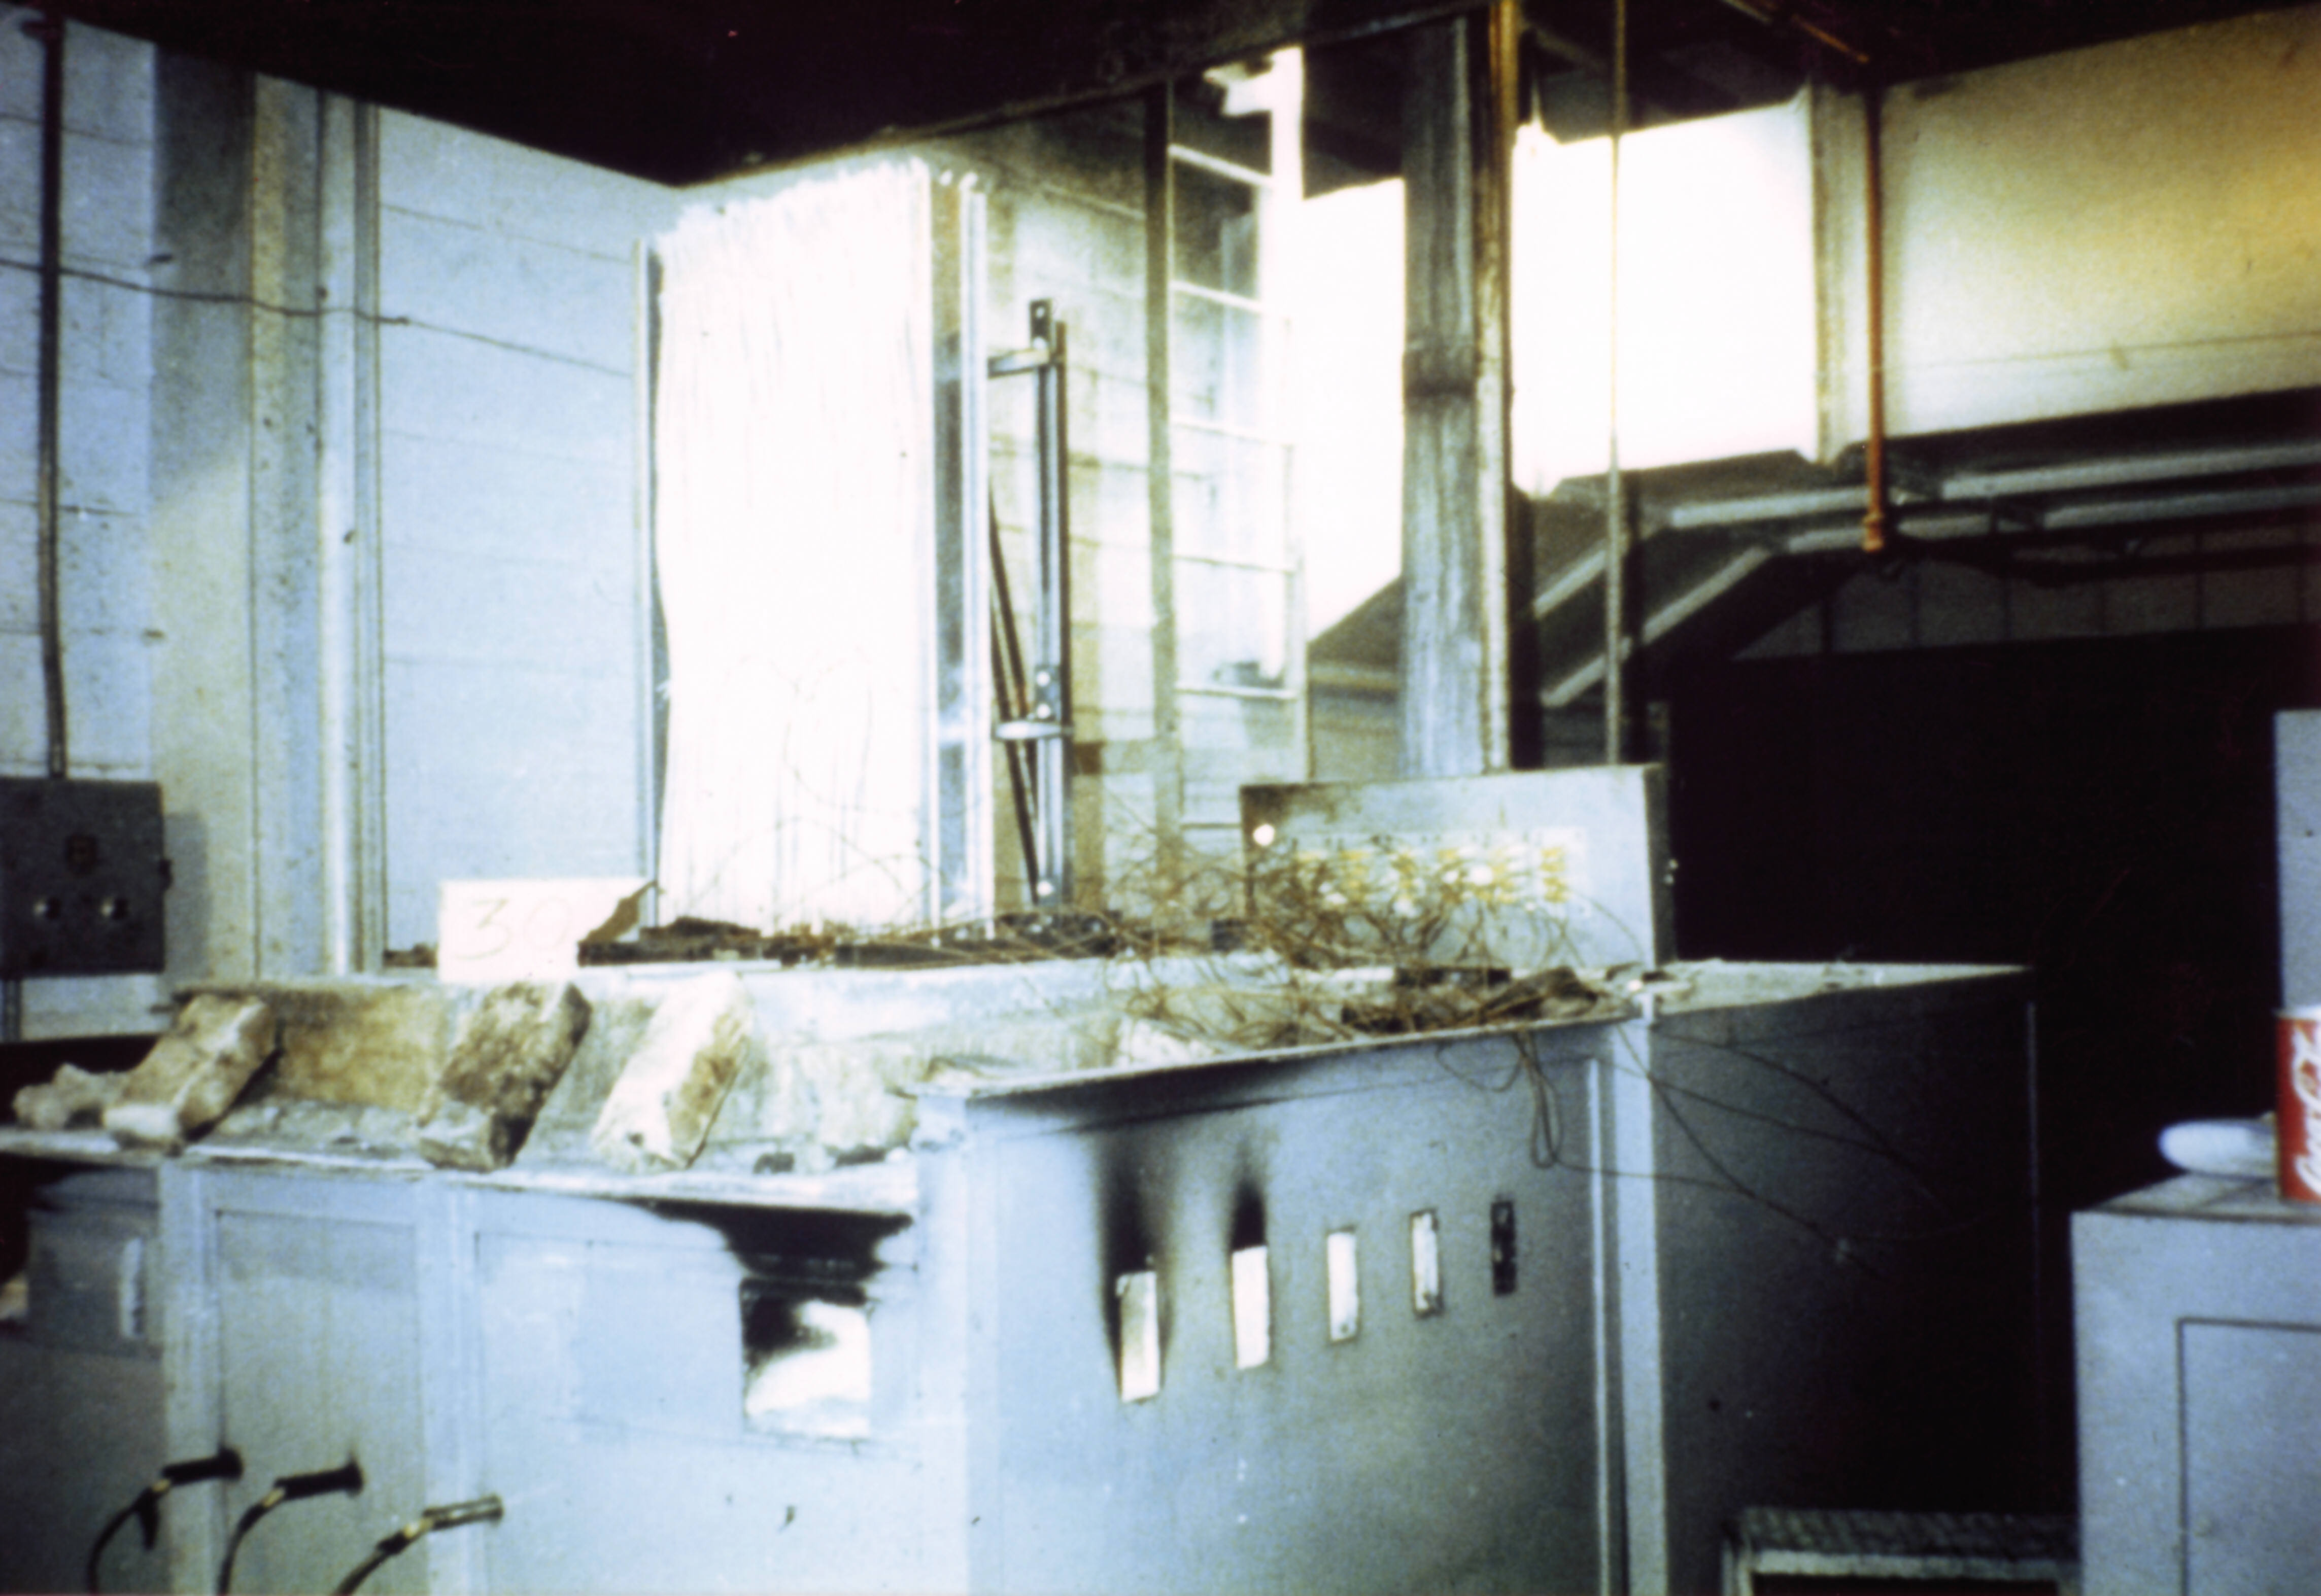 File:3m fire test furnace cottage grove mn jpg - Wikimedia